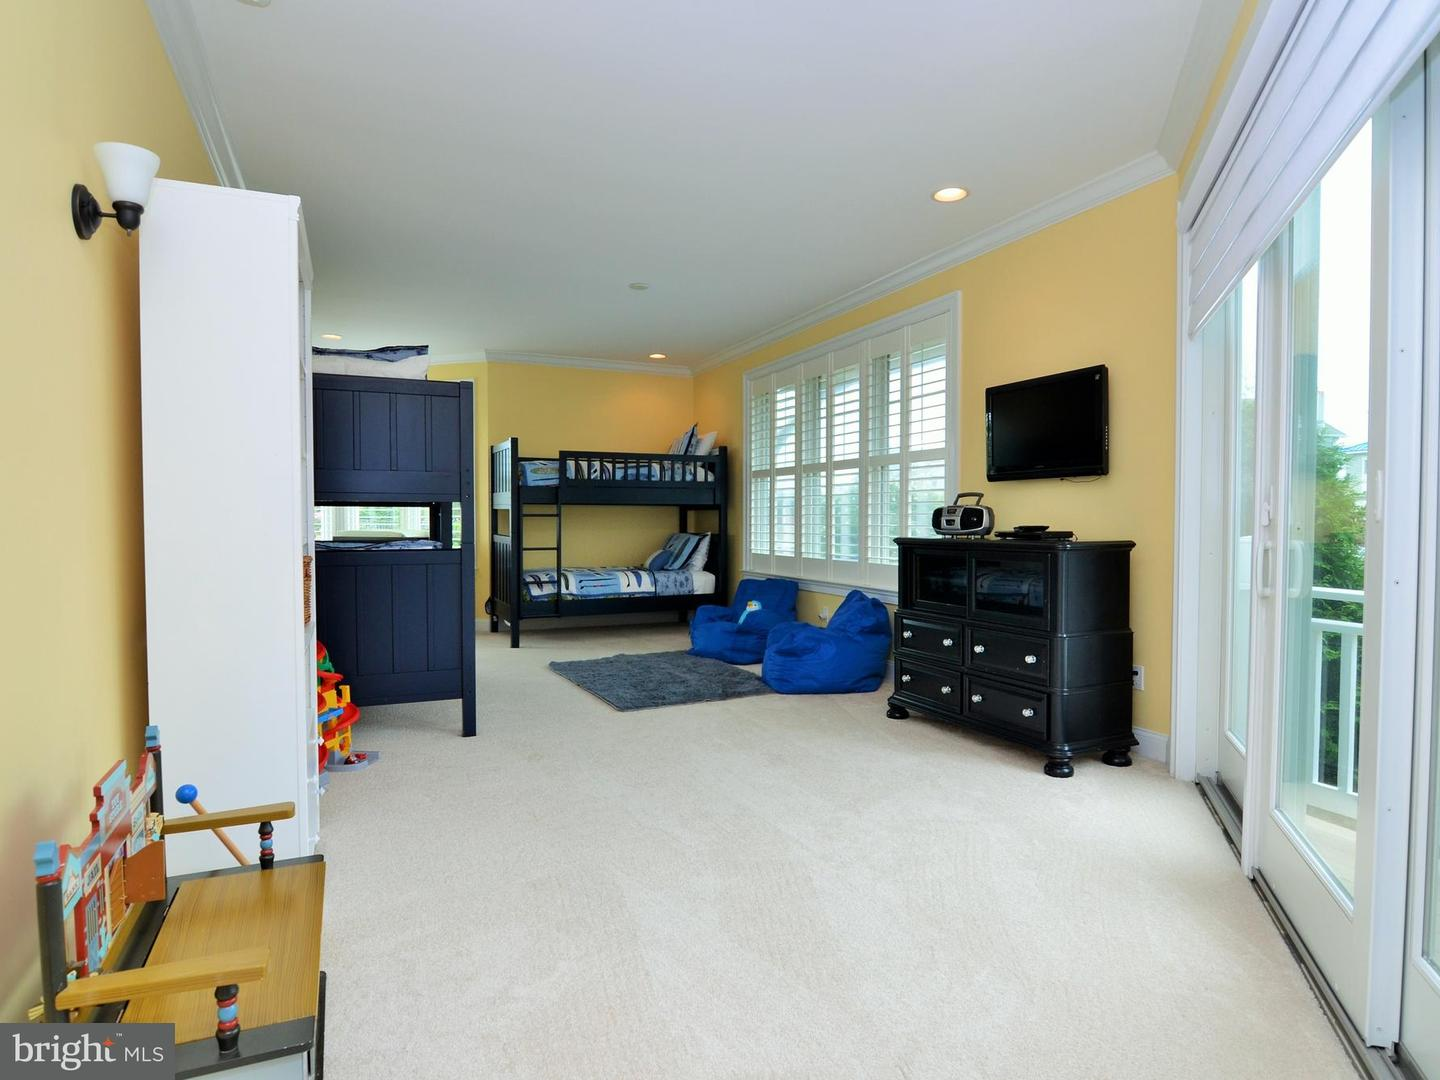 1002293530-300500807518-2018-09-25-15-08-25 31 Hall Ave | Rehoboth Beach, DE Real Estate For Sale | MLS# 1002293530  - 1st Choice Properties